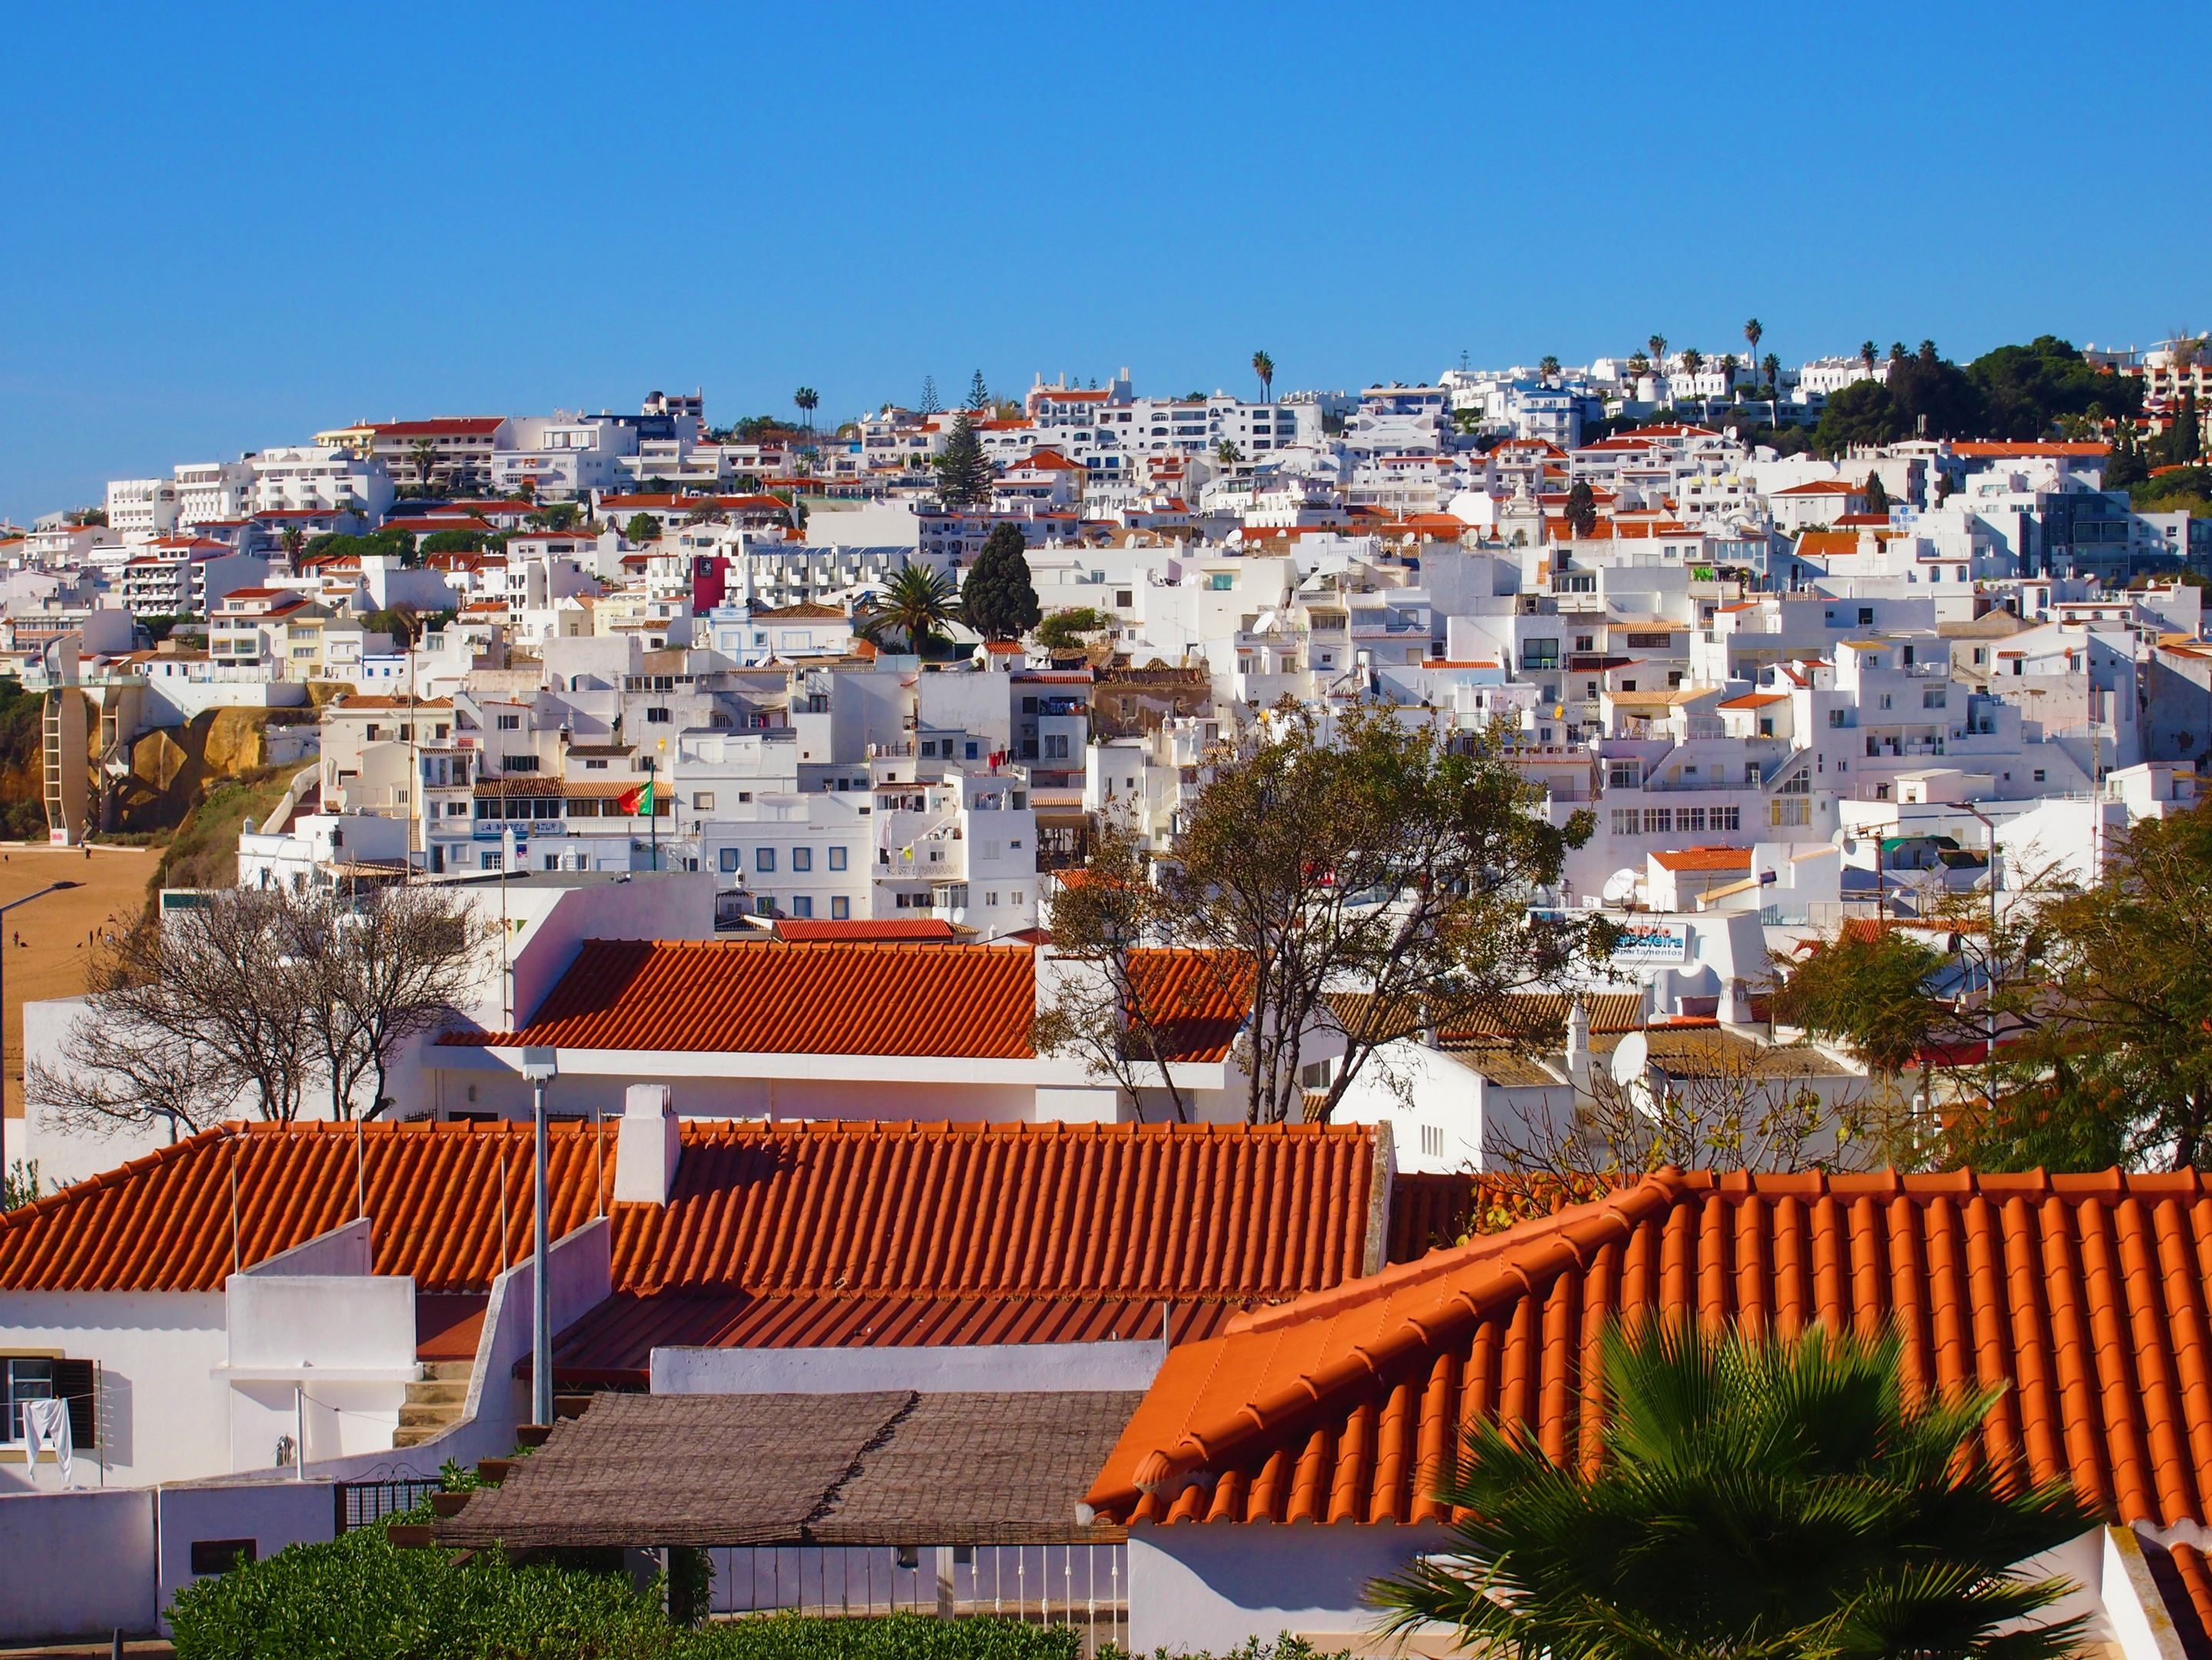 Whitewashed houses - looking towards the Old Town, Albufeira